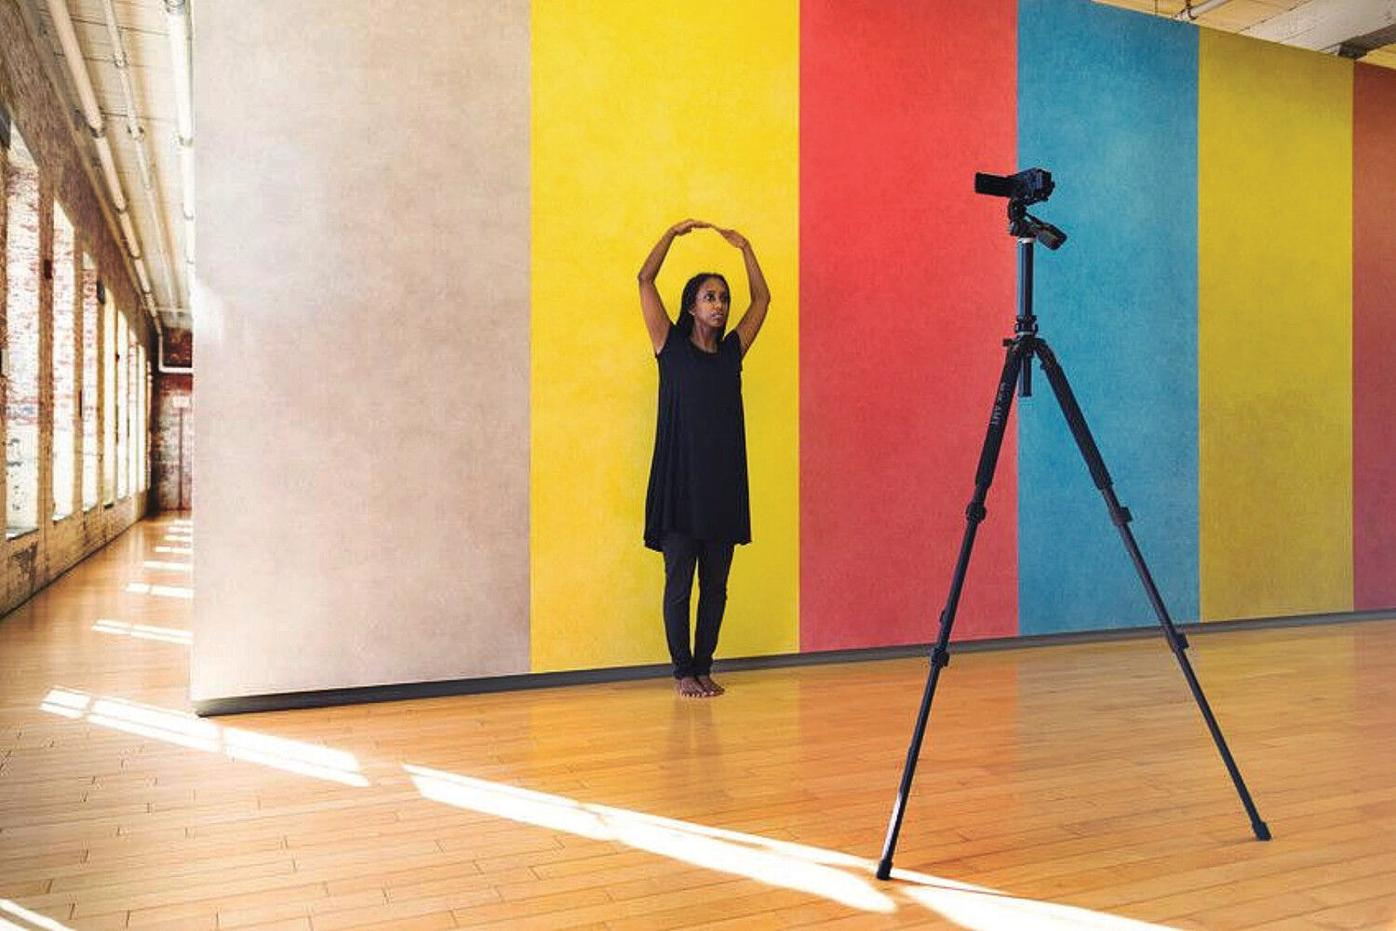 Artists in residence given freedom to work at Mass MoCA